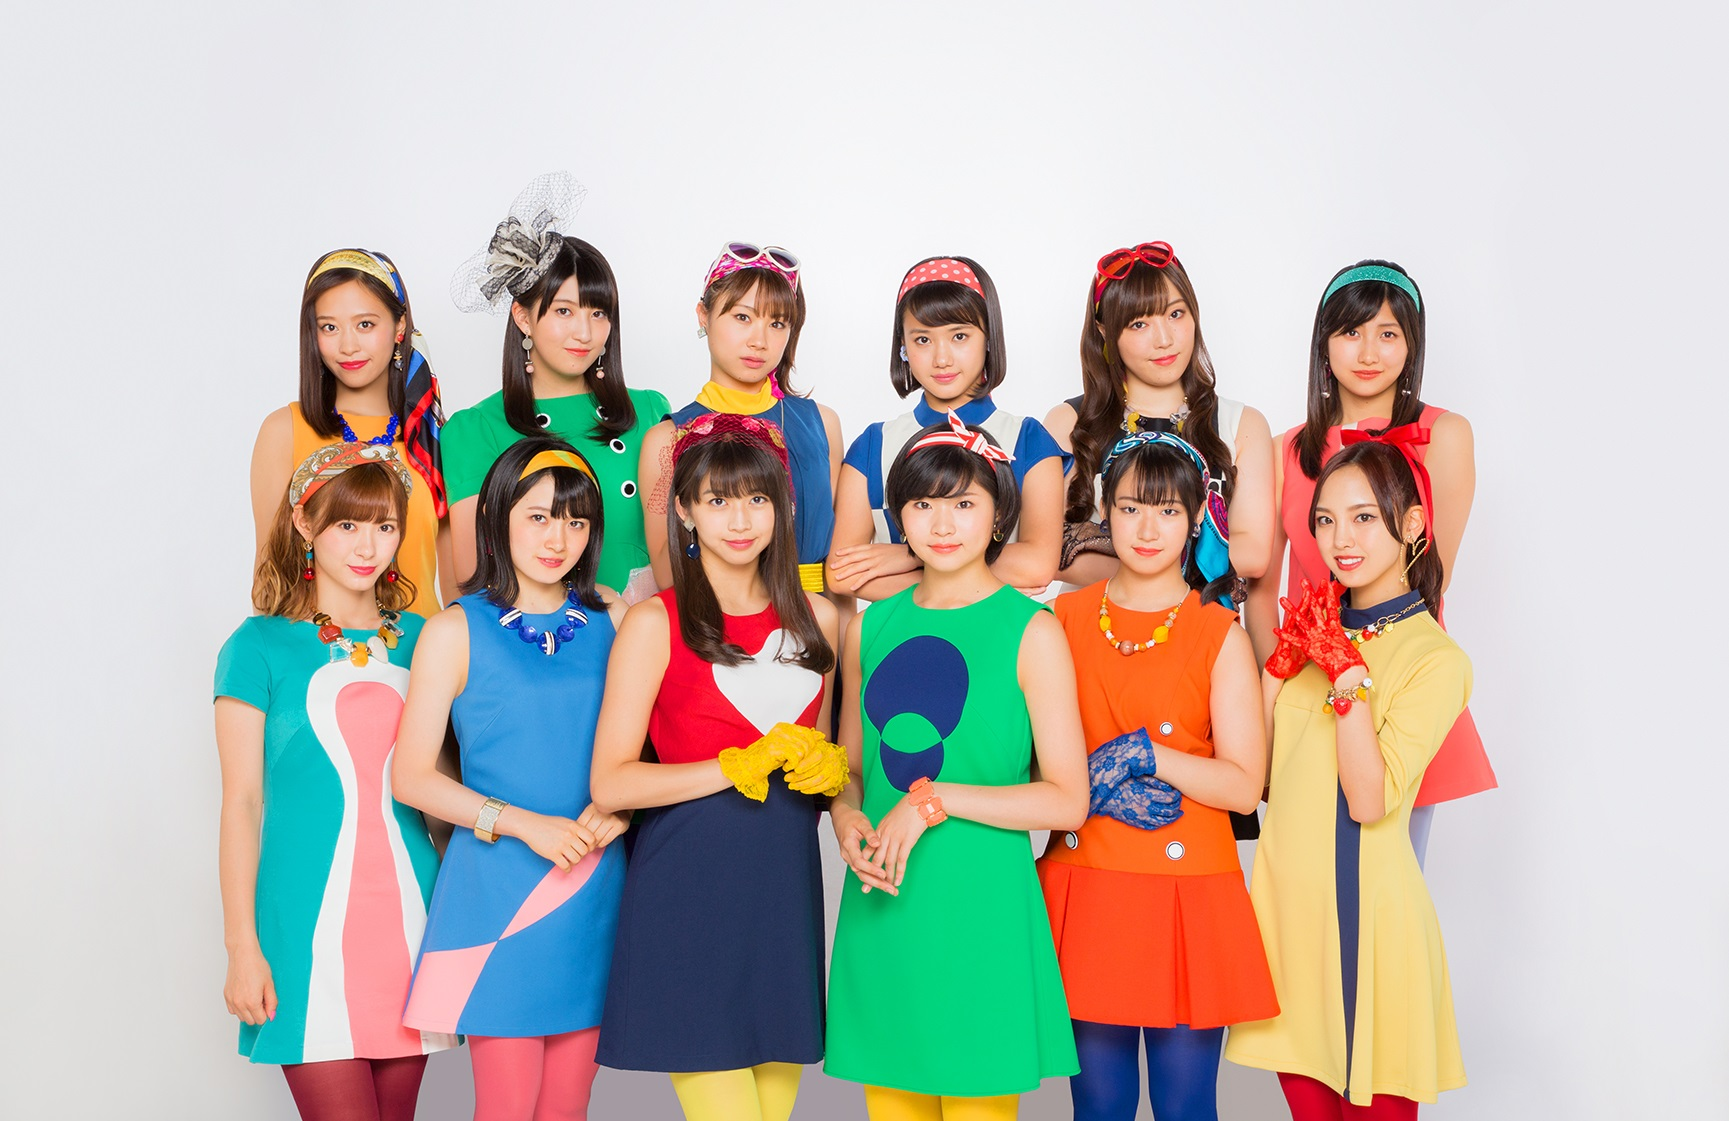 Live Q&A with Morning Musume。'18 Ask your questions with #AskMORNINGMUSUME